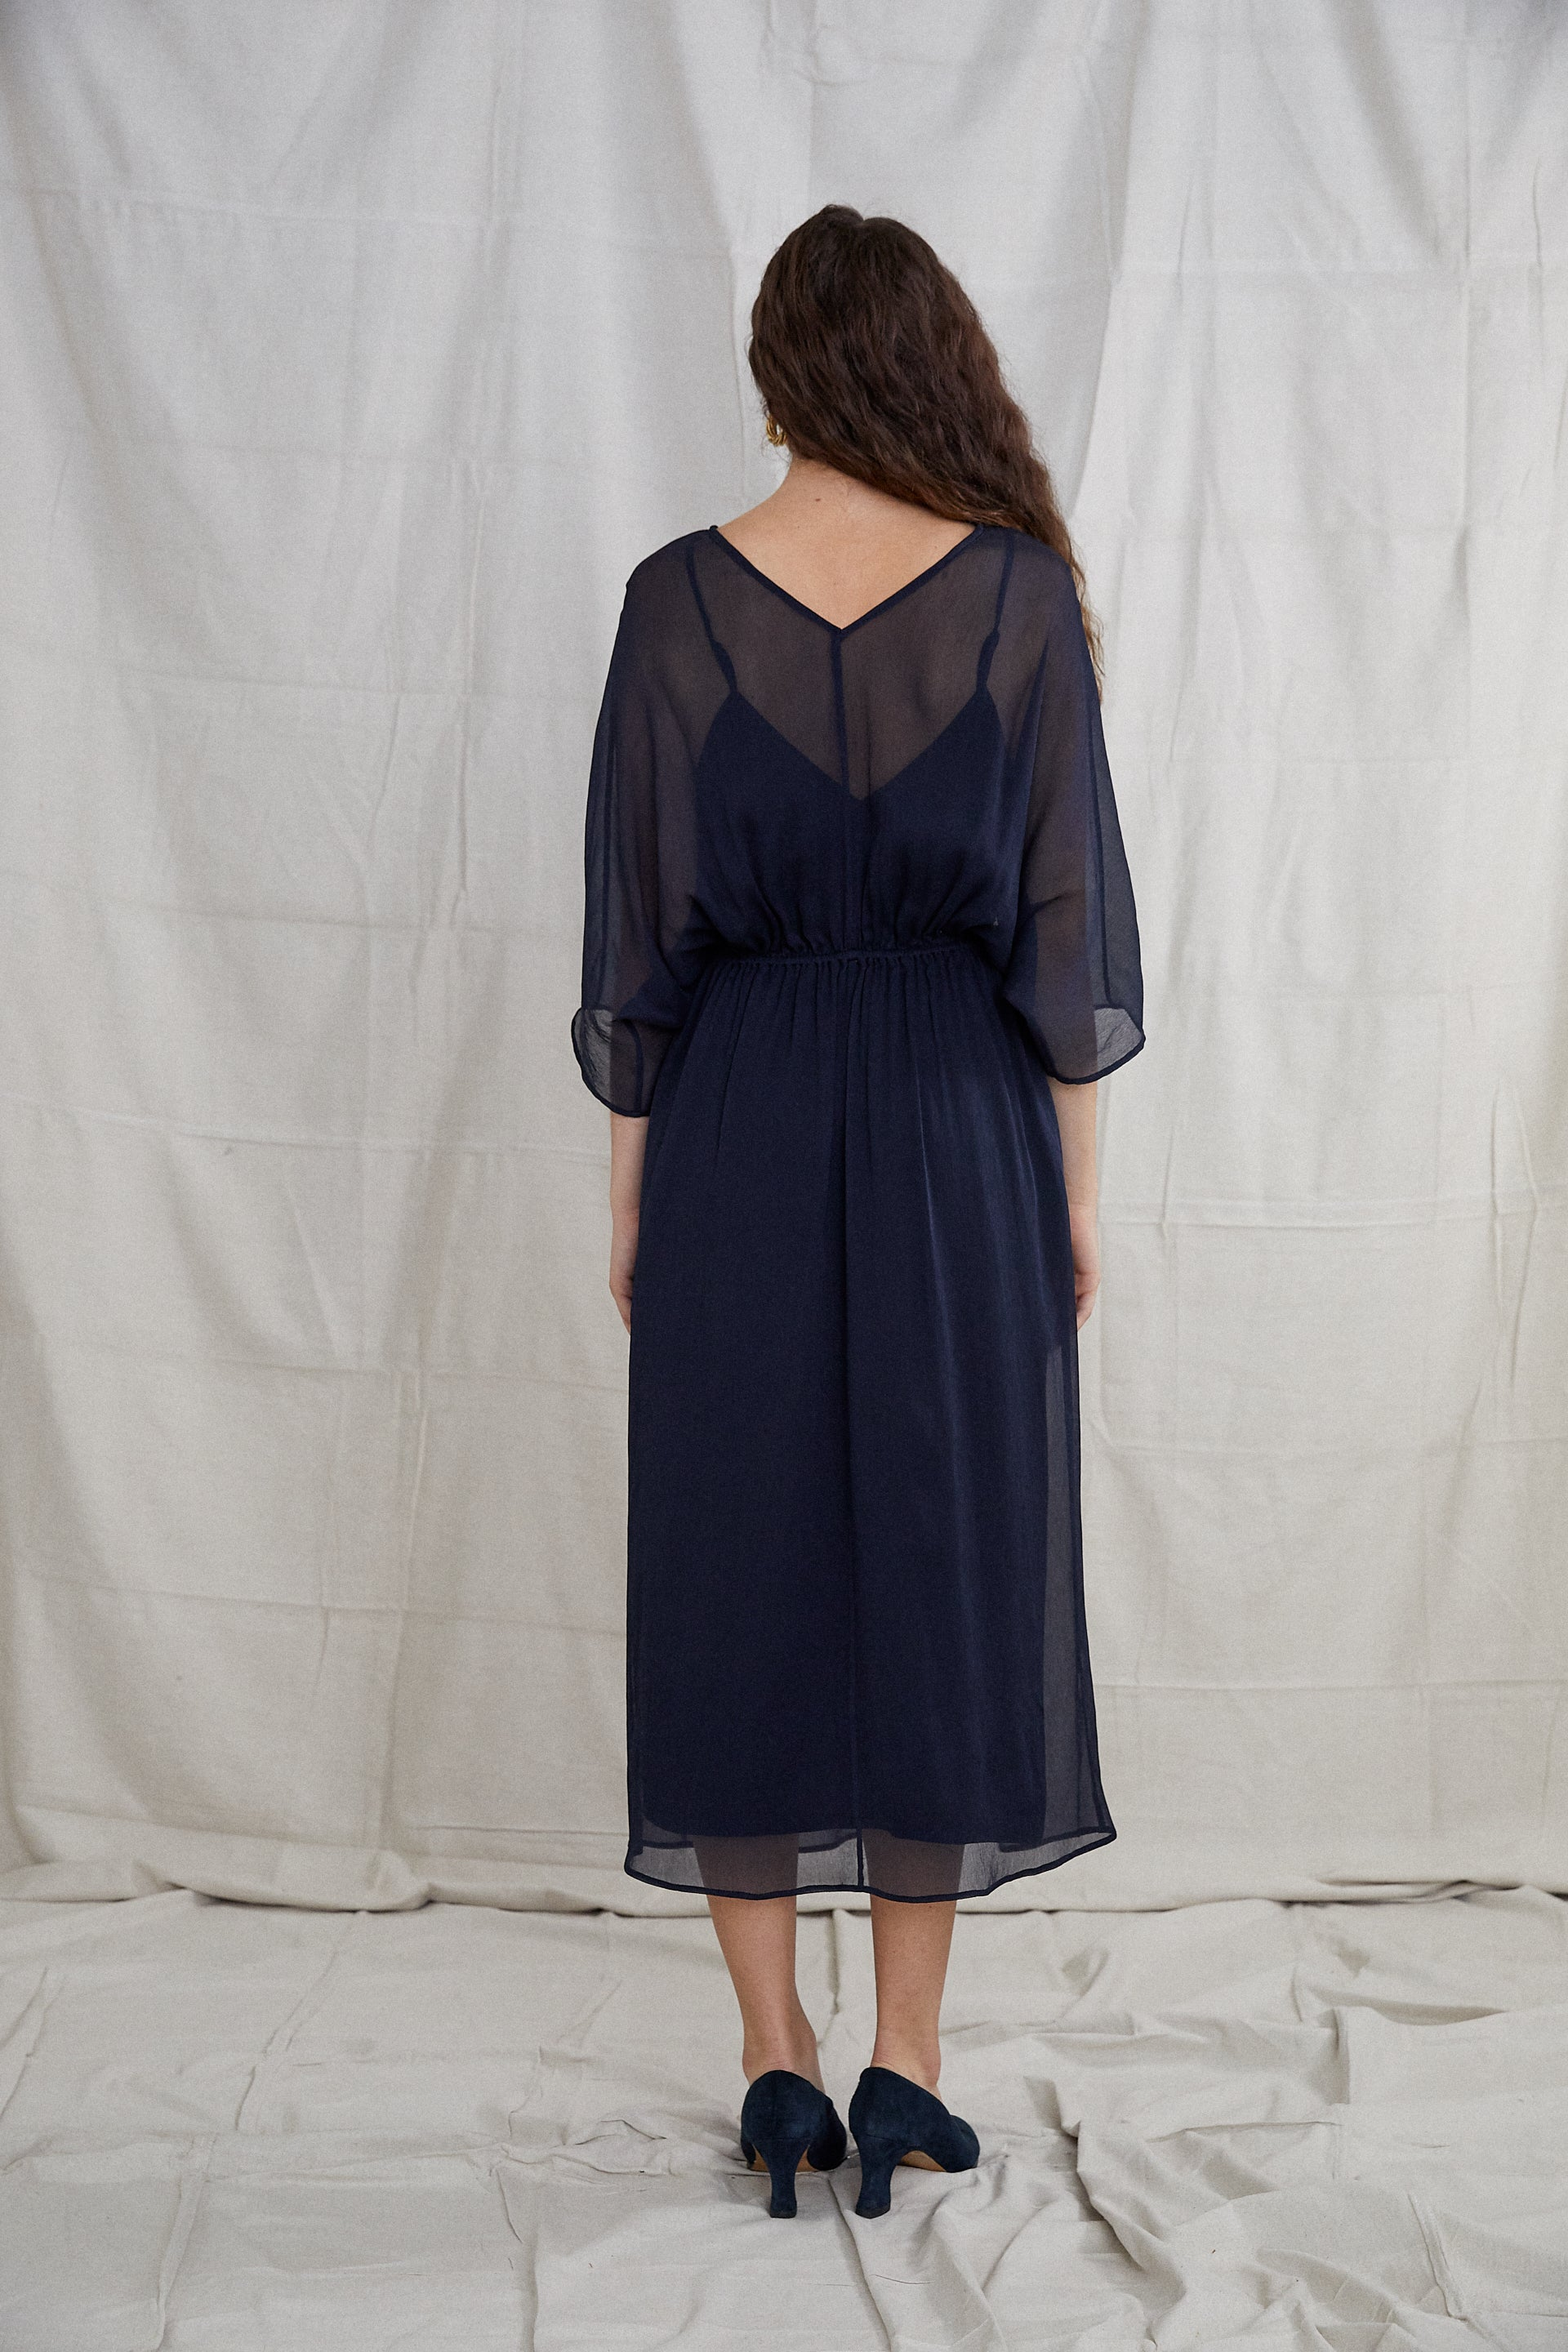 Vaya Dress - Indigo Silk